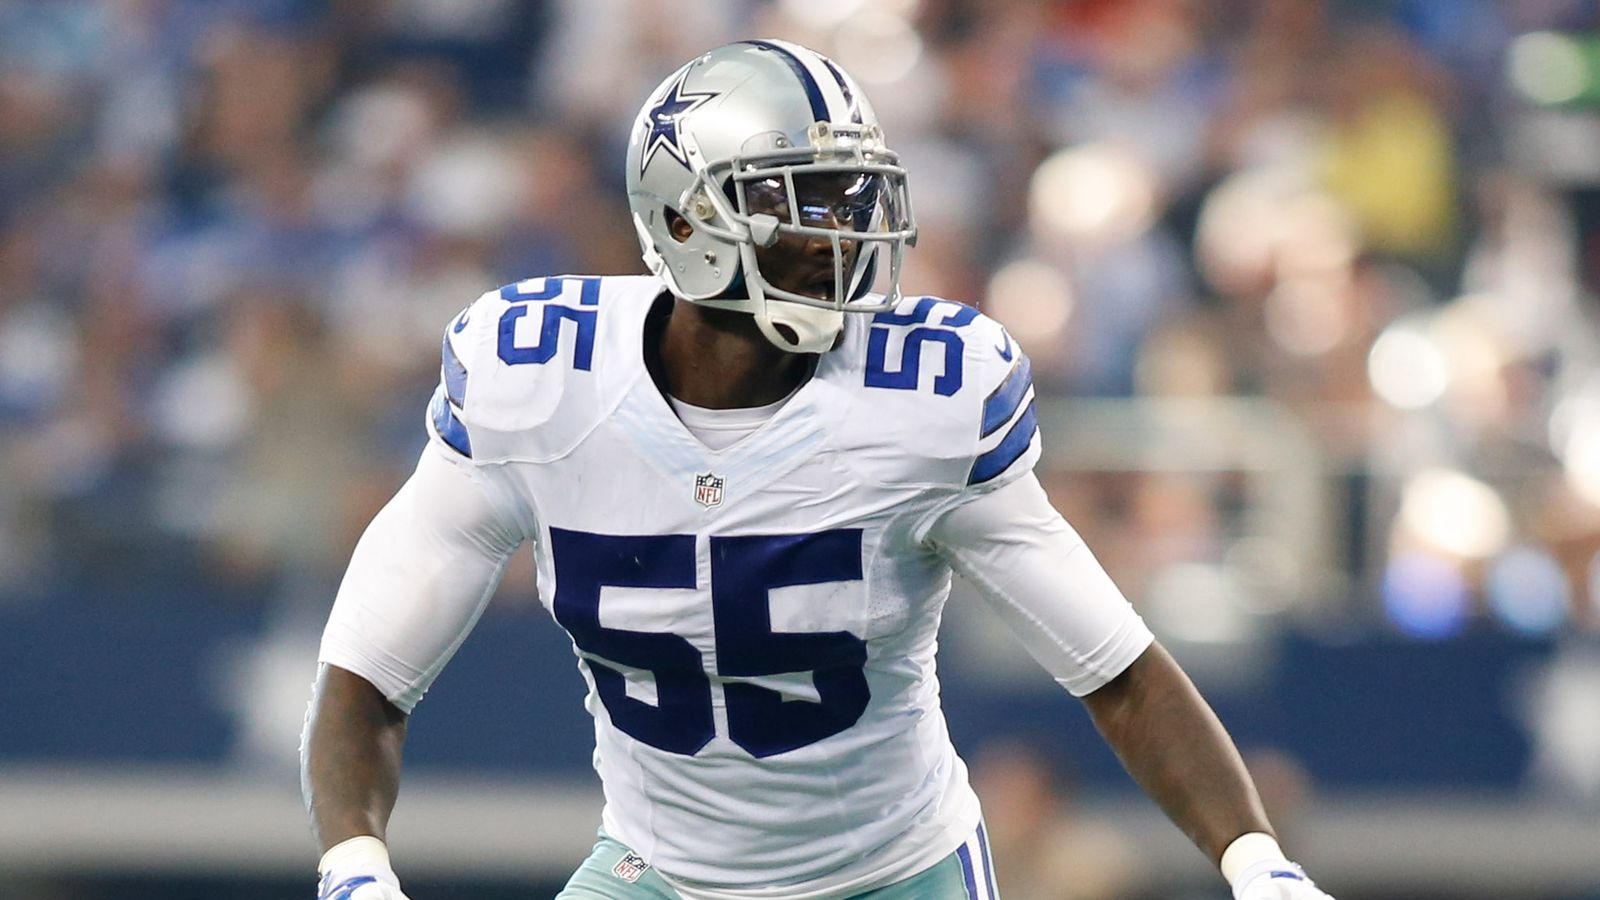 Cowboys Headlines - 3 Free Agent Options To Replace Rolando McClain For Cowboys 4